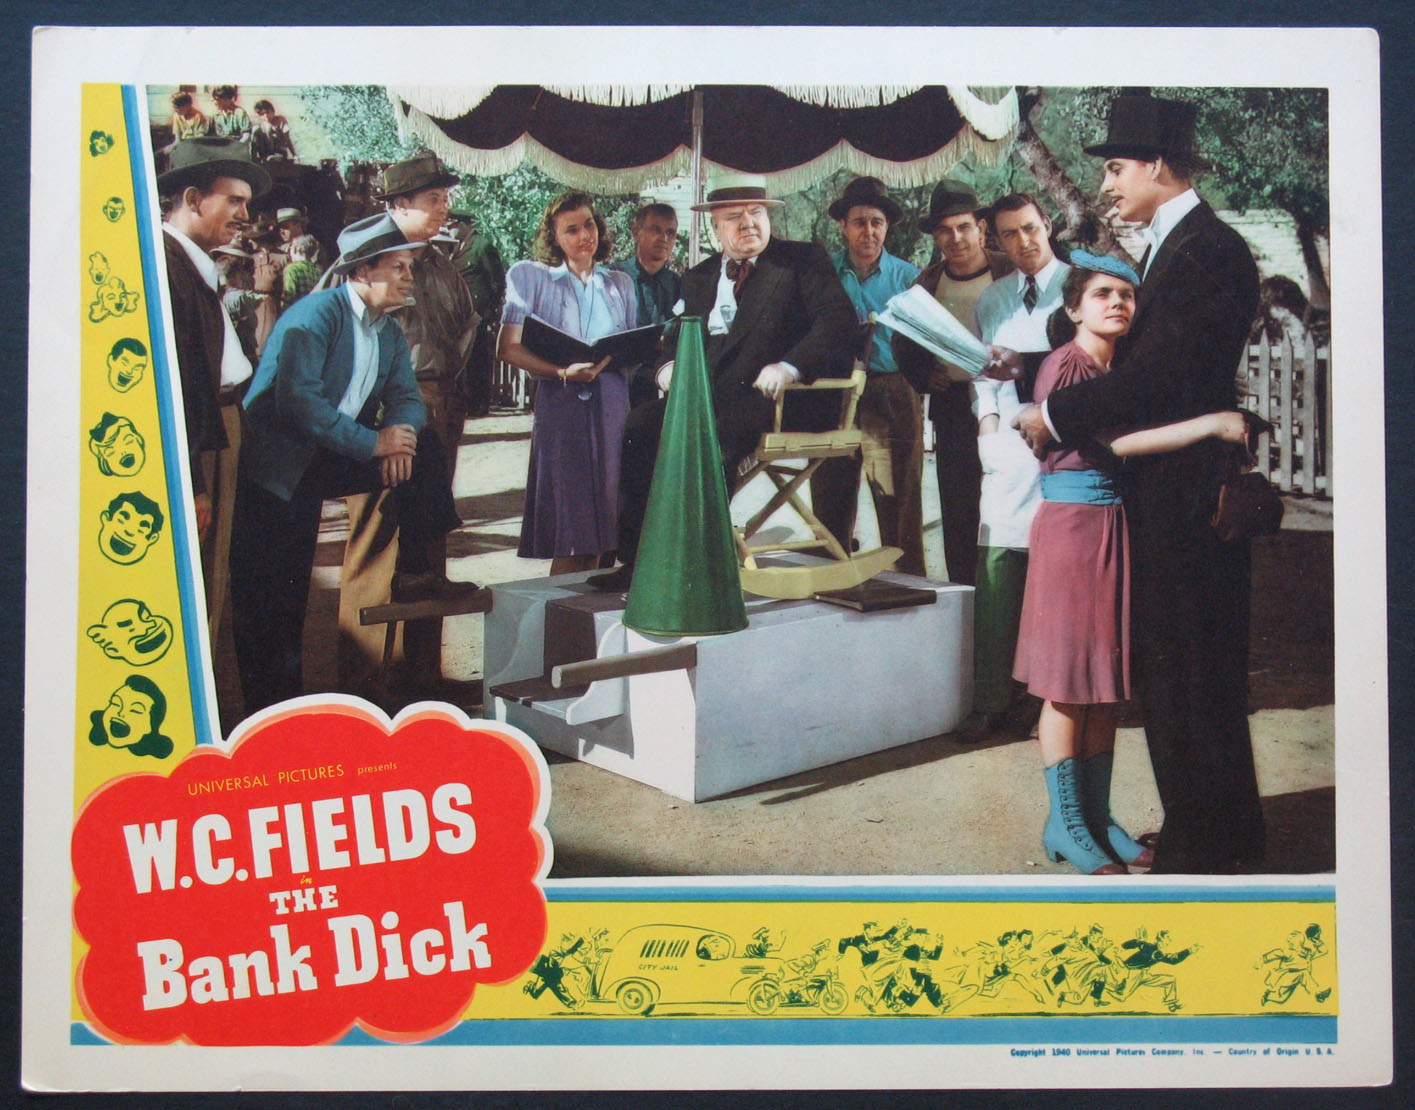 BANK DICK, THE (The Bank Dick) @ FilmPosters.com